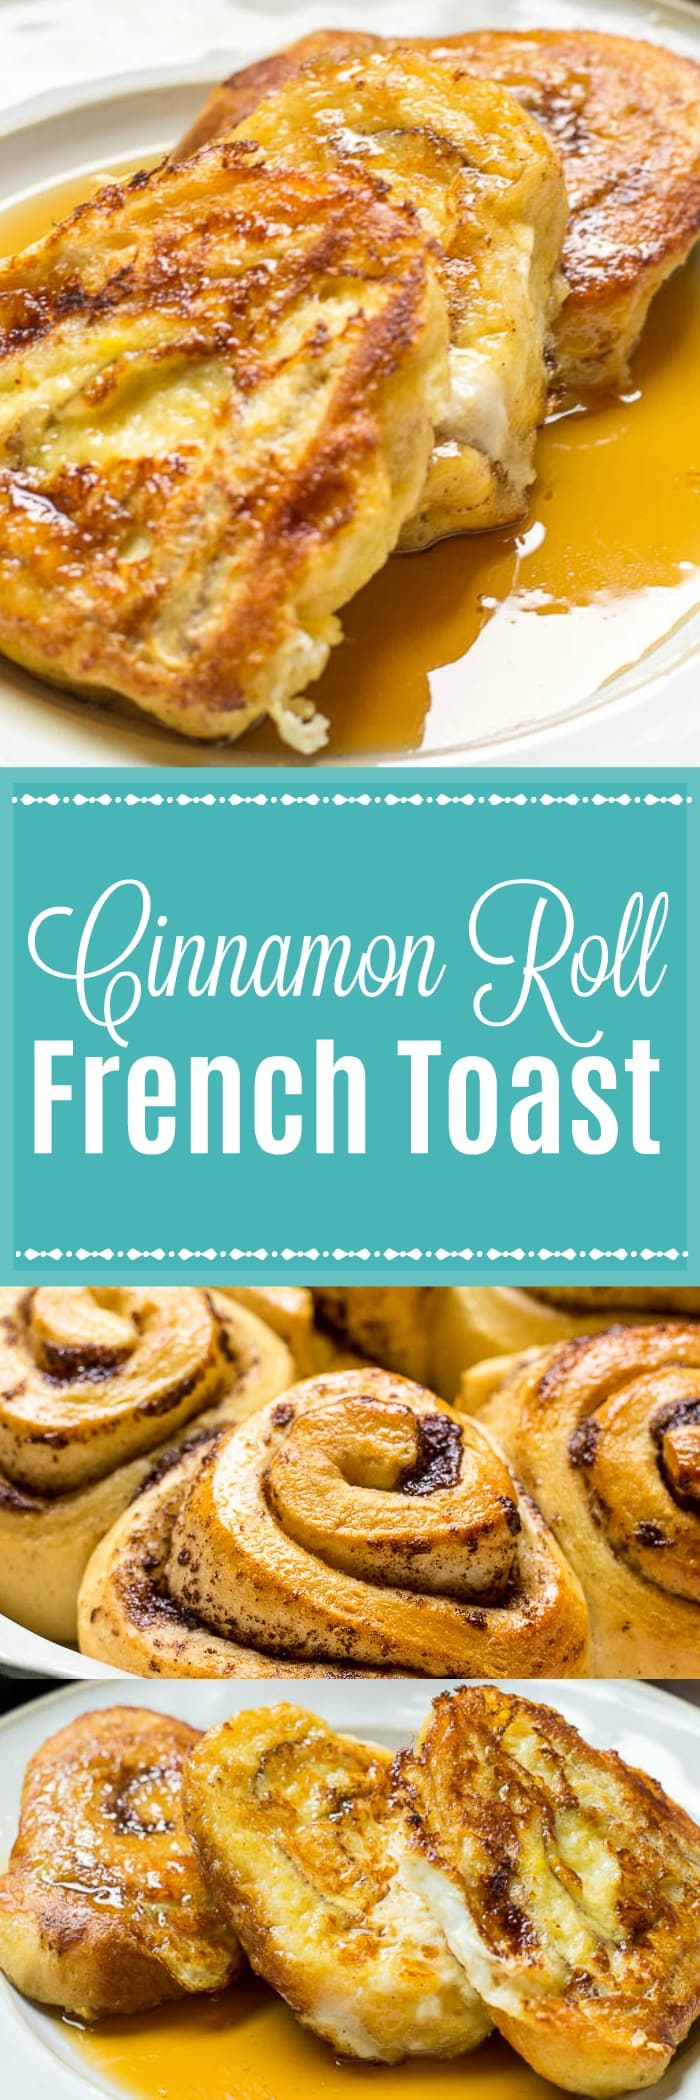 This Cinnamon Roll French Toast recipe turns your favorite cinnamon rolls into sticky, sweet delicious French toast for an over-the-top breakfast or brunch!